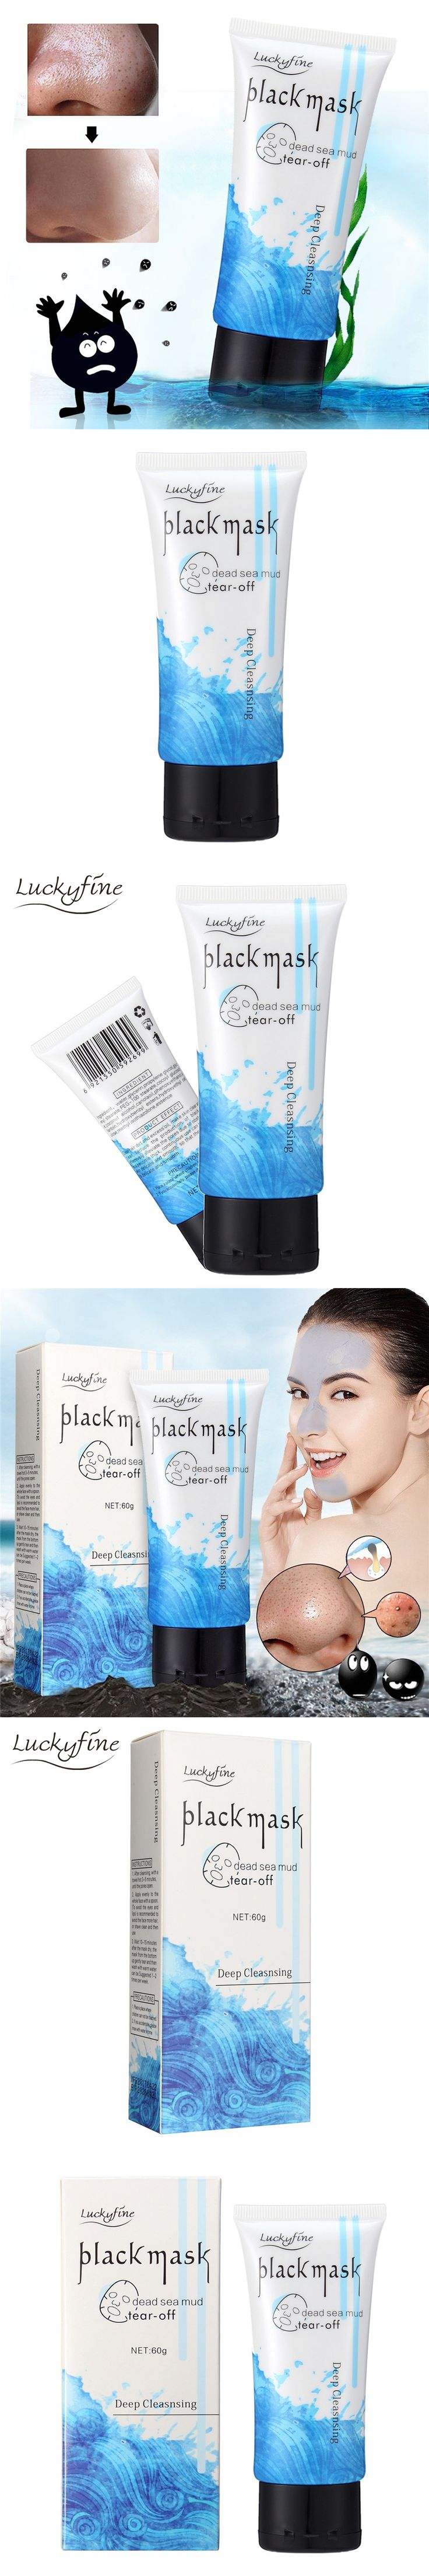 Luckyfine Deep Skin Cleanser Dead Sea Mud Mask Black Mask For Face Acne Oily Skin Mud Mask Face Skin Care Blackhead Removal